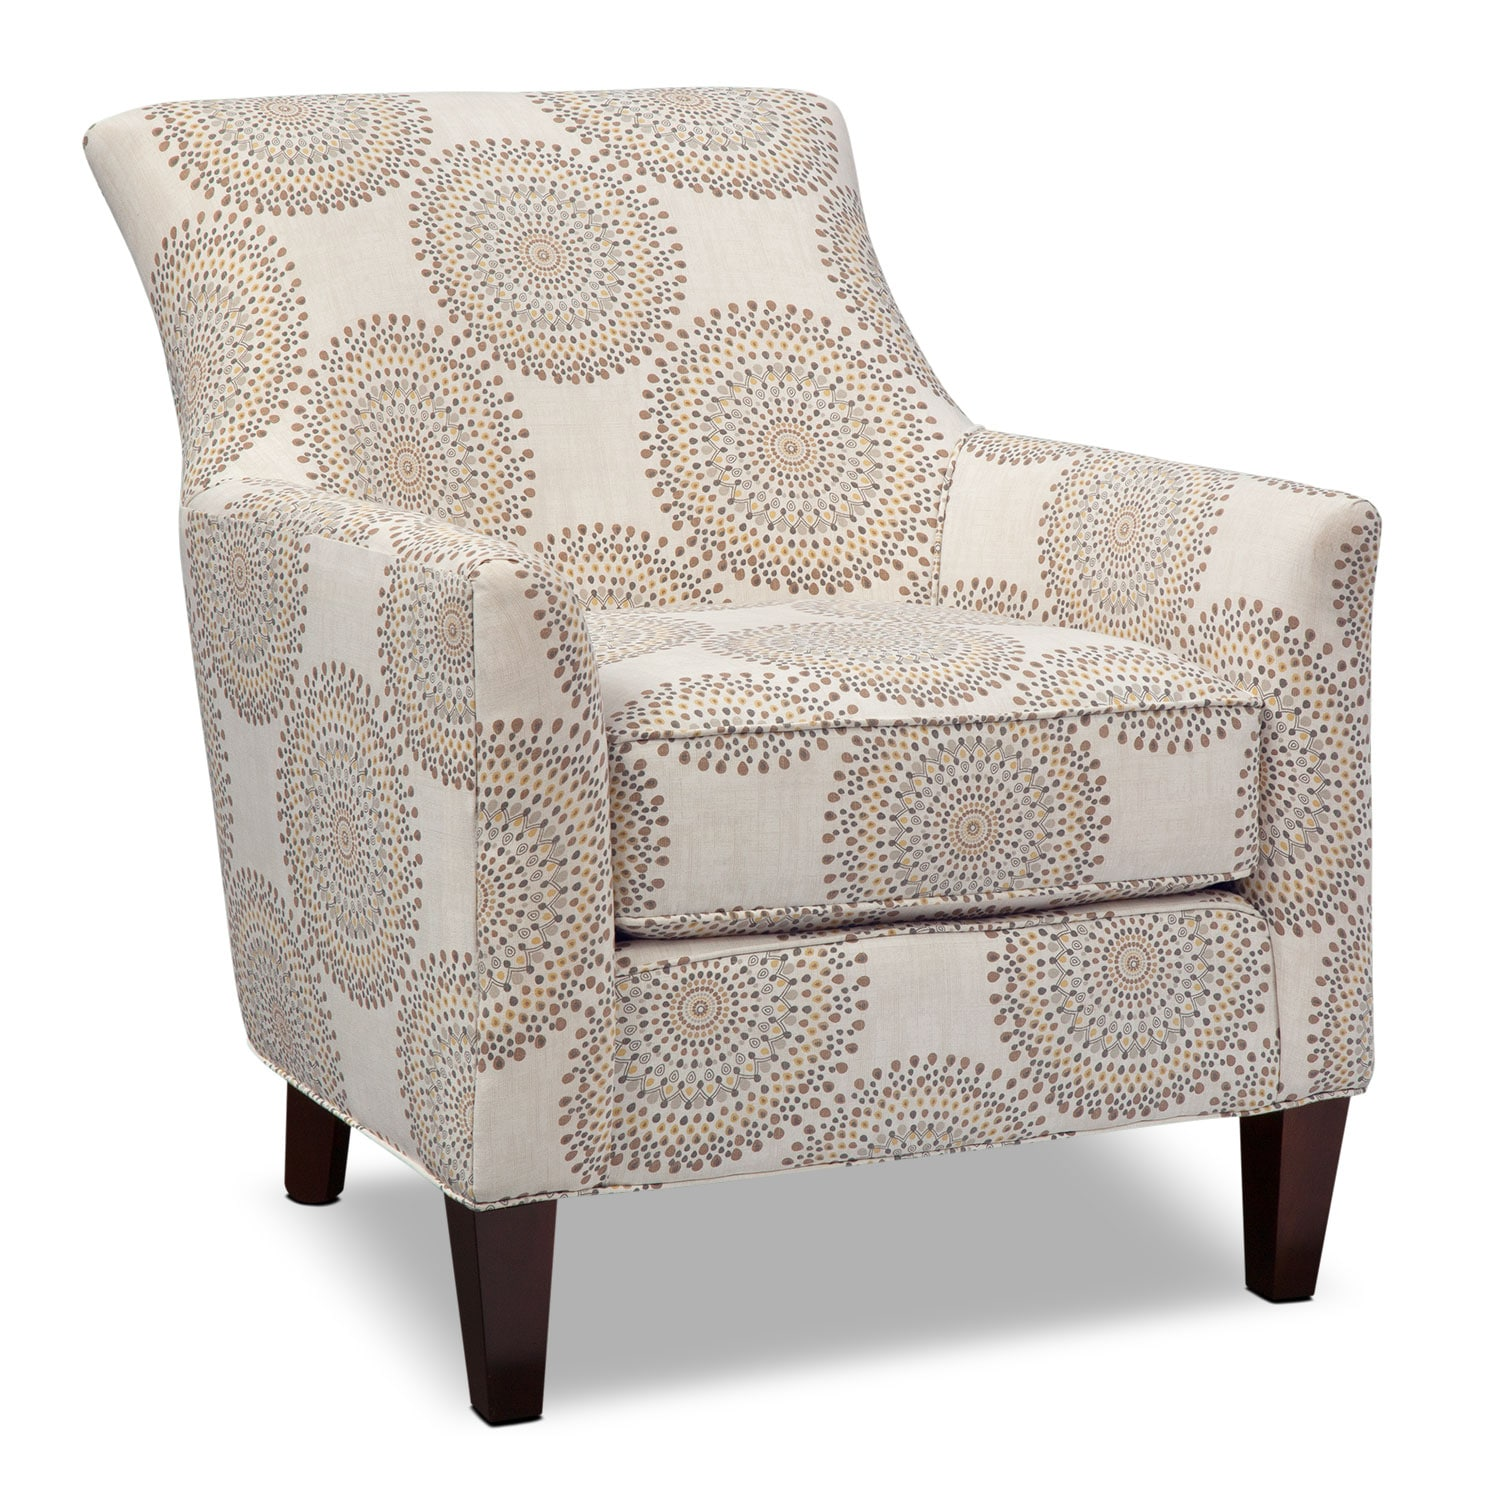 Bedroom Furniture - Rachel Carousel Accent Chair - Sand